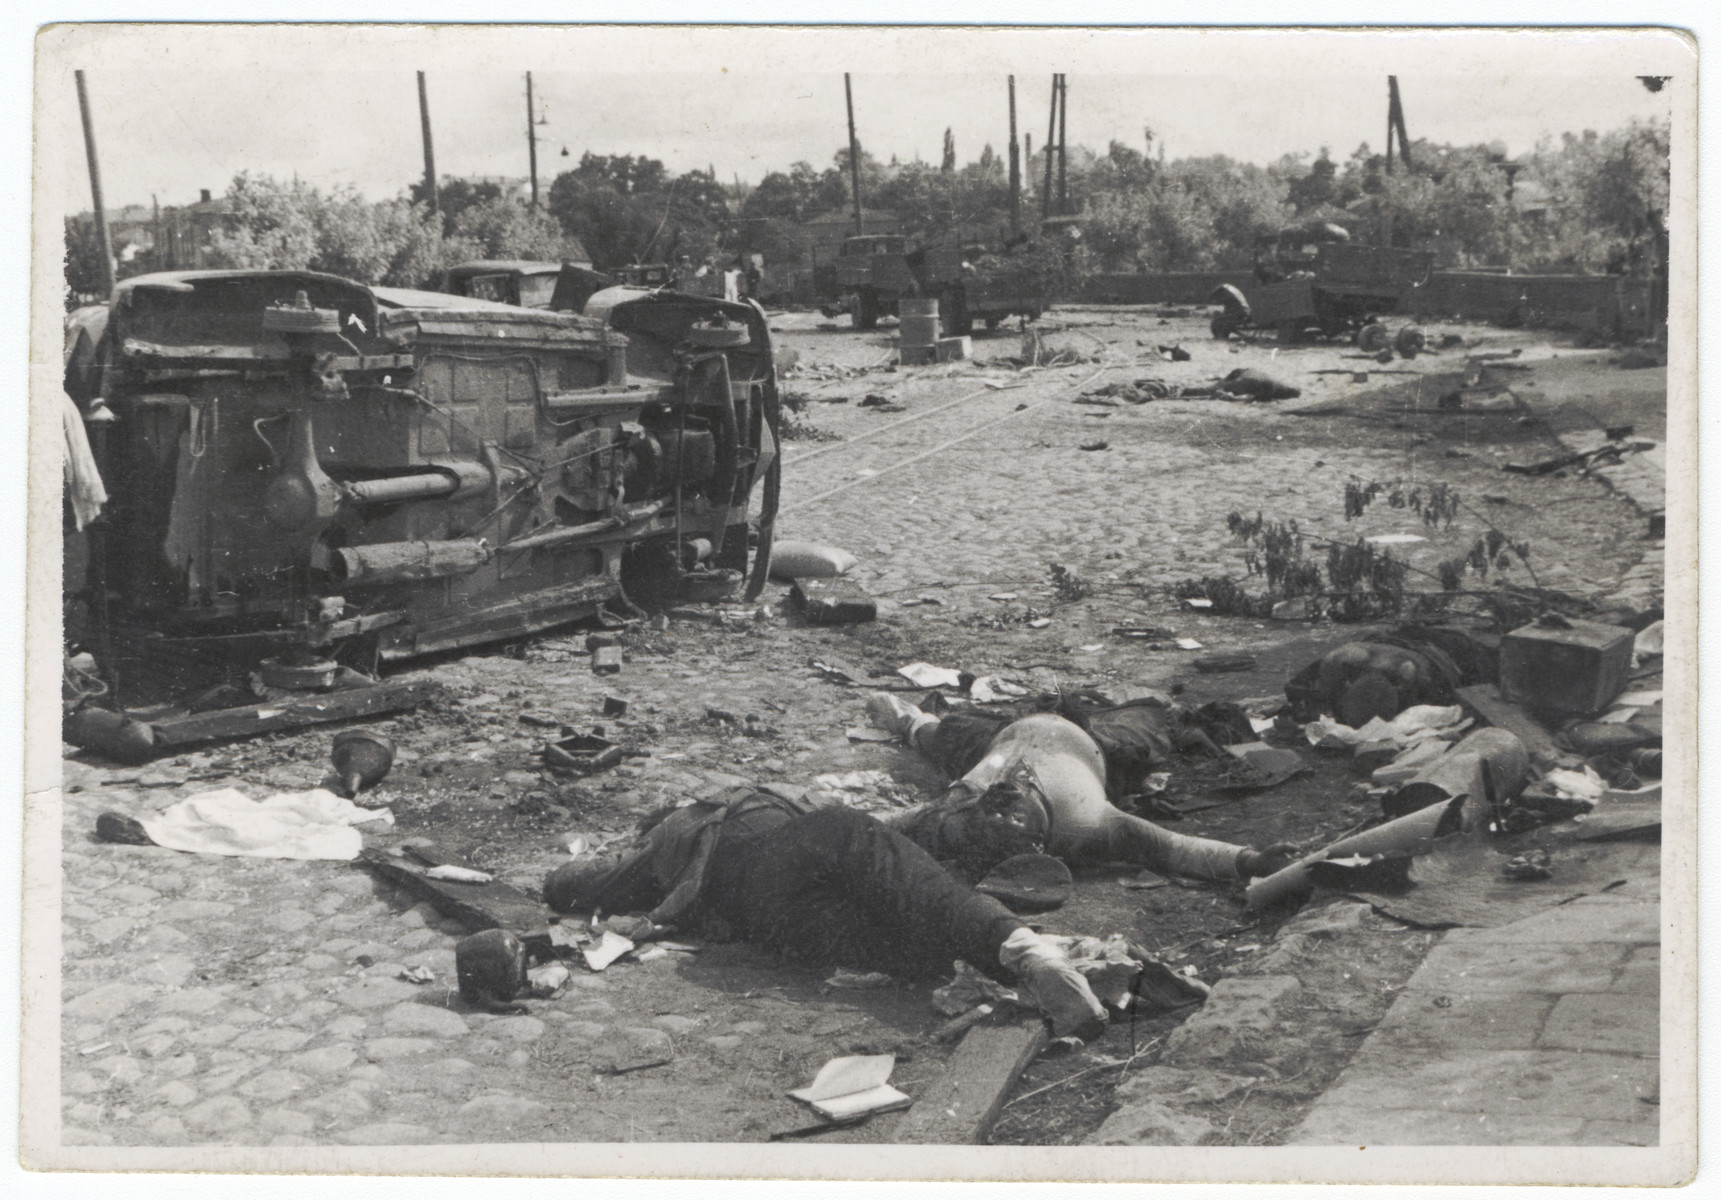 Corpses and burned out military vehicles lie near a train track following a battle [probably during the German invasion of the Soviet Union].